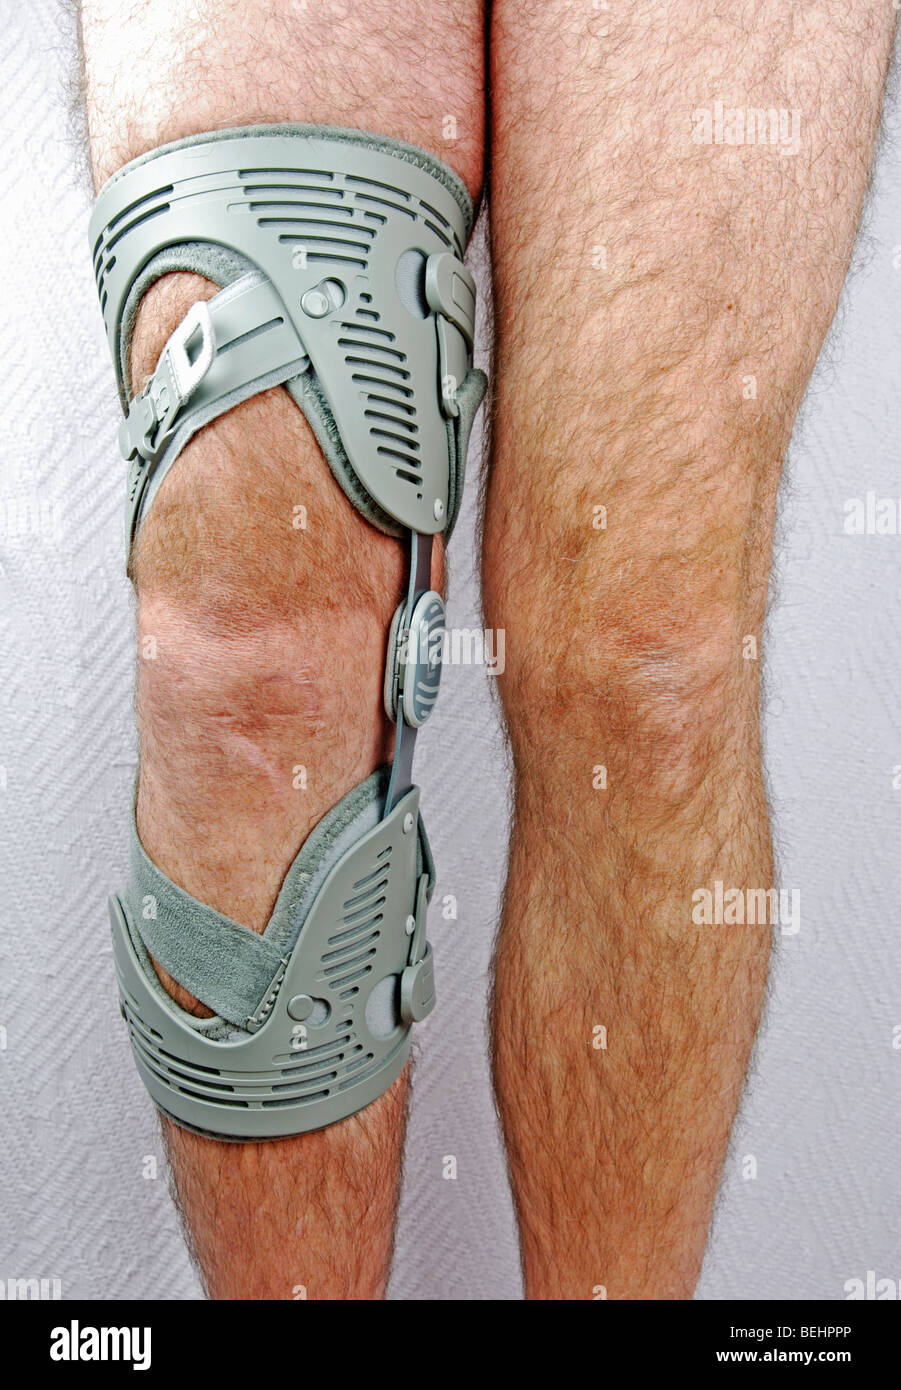 a man wearing a knee brace/support on an injured knee - Stock Image